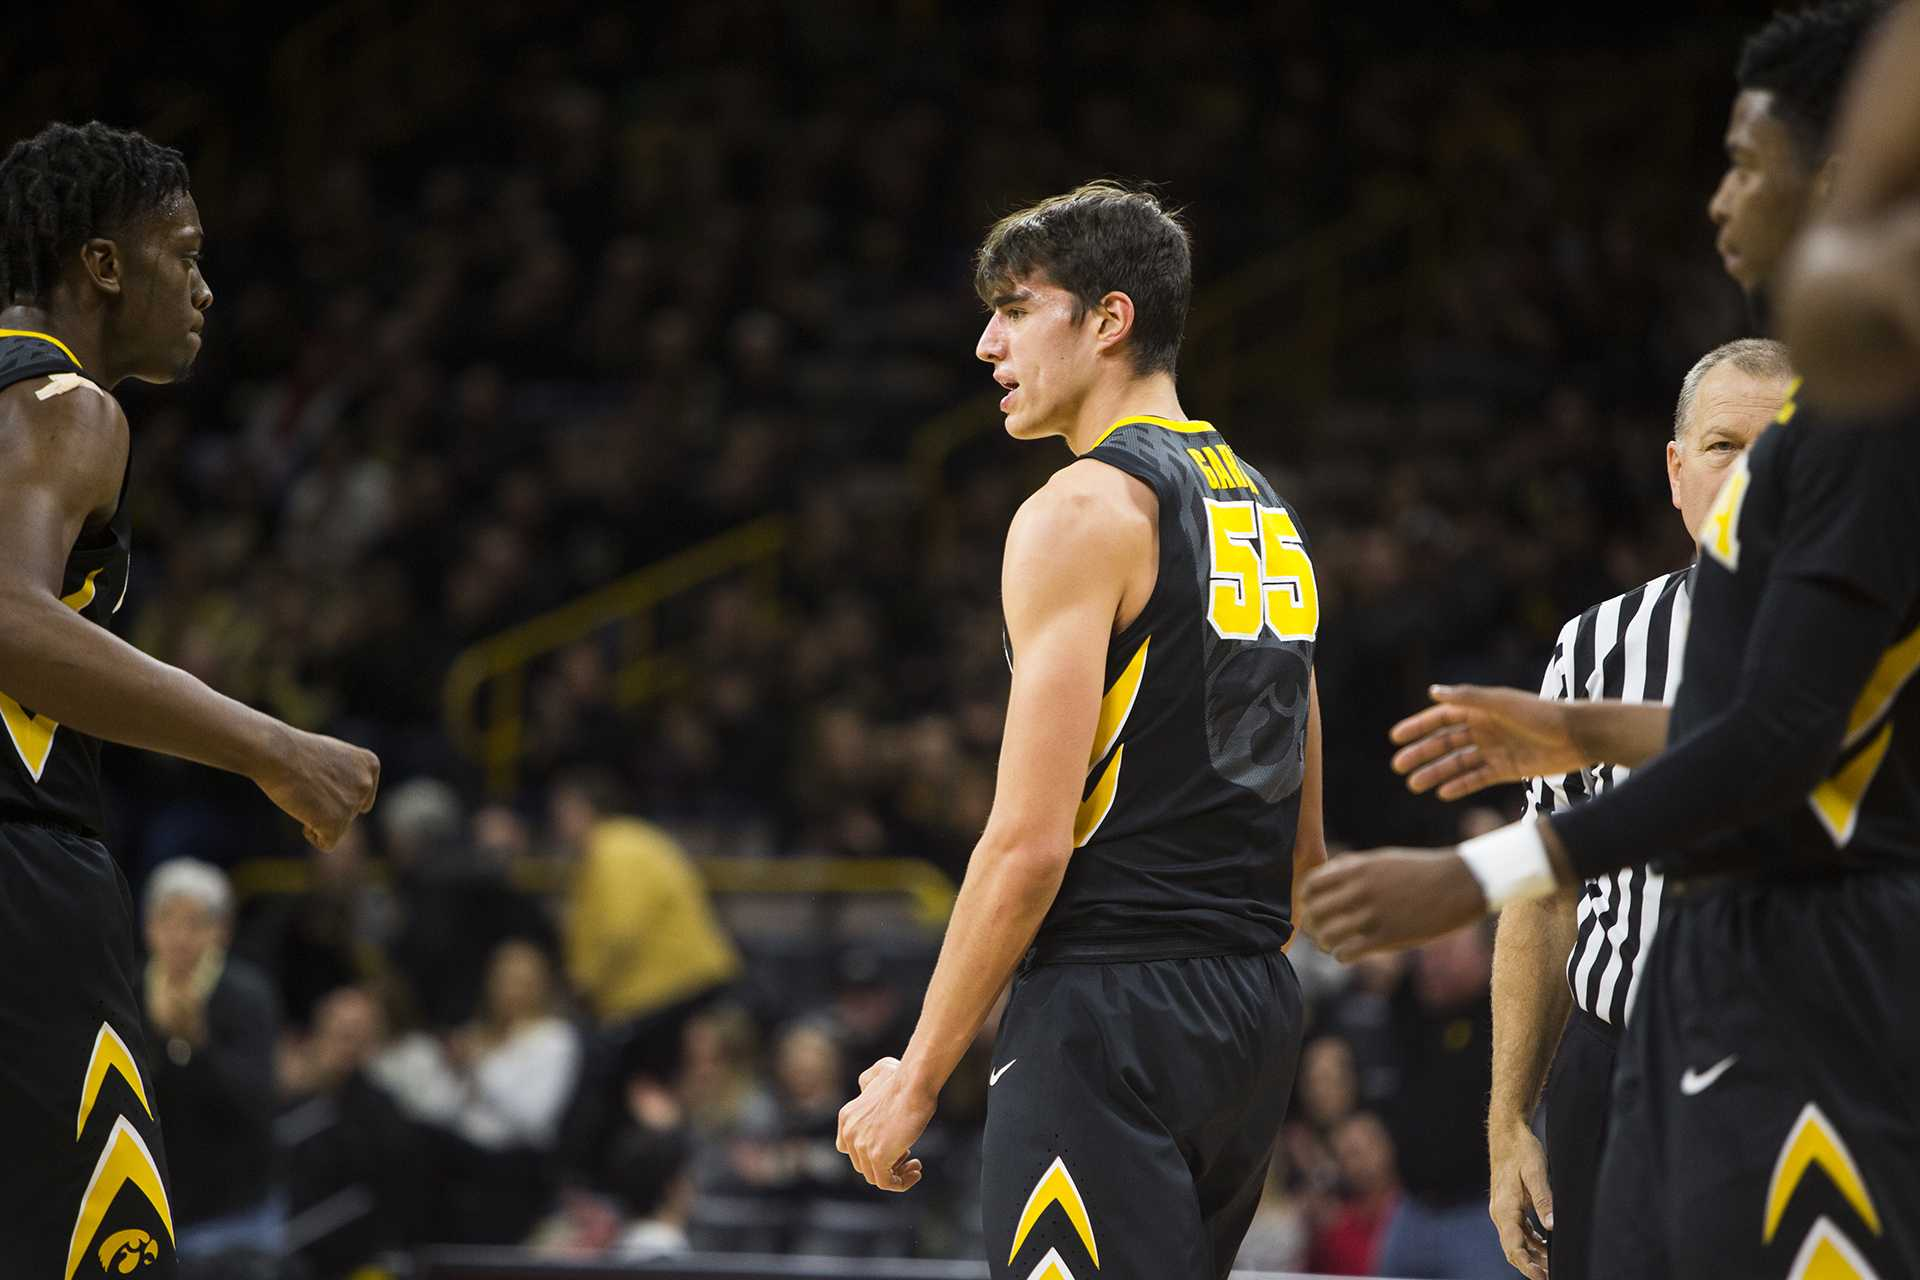 Iowa forward Luka Garza reacts after drawing a foul during an Iowa/Ohio State men's basketball game in Carver-Hawkeye Arena on Thursday, Jan. 4, 2018. The Buckeyes defeated the Hawkeyes, 92-81. (Joseph Cress/The Daily Iowan)